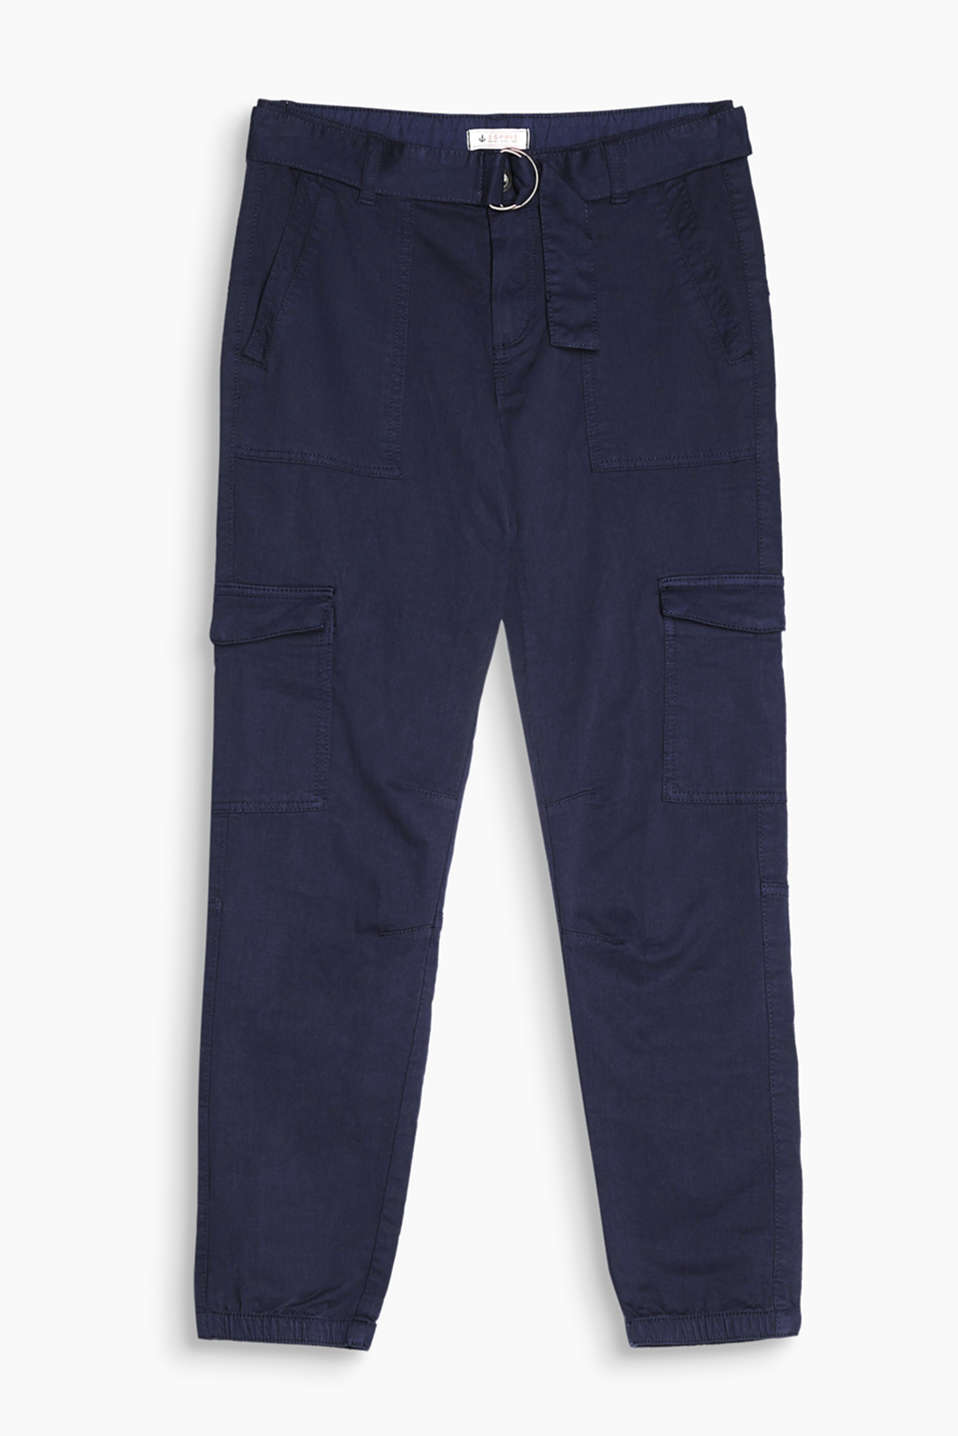 We love casual and practical details - like these chinos with cargo pockets, a wide belt and leg cuffs!